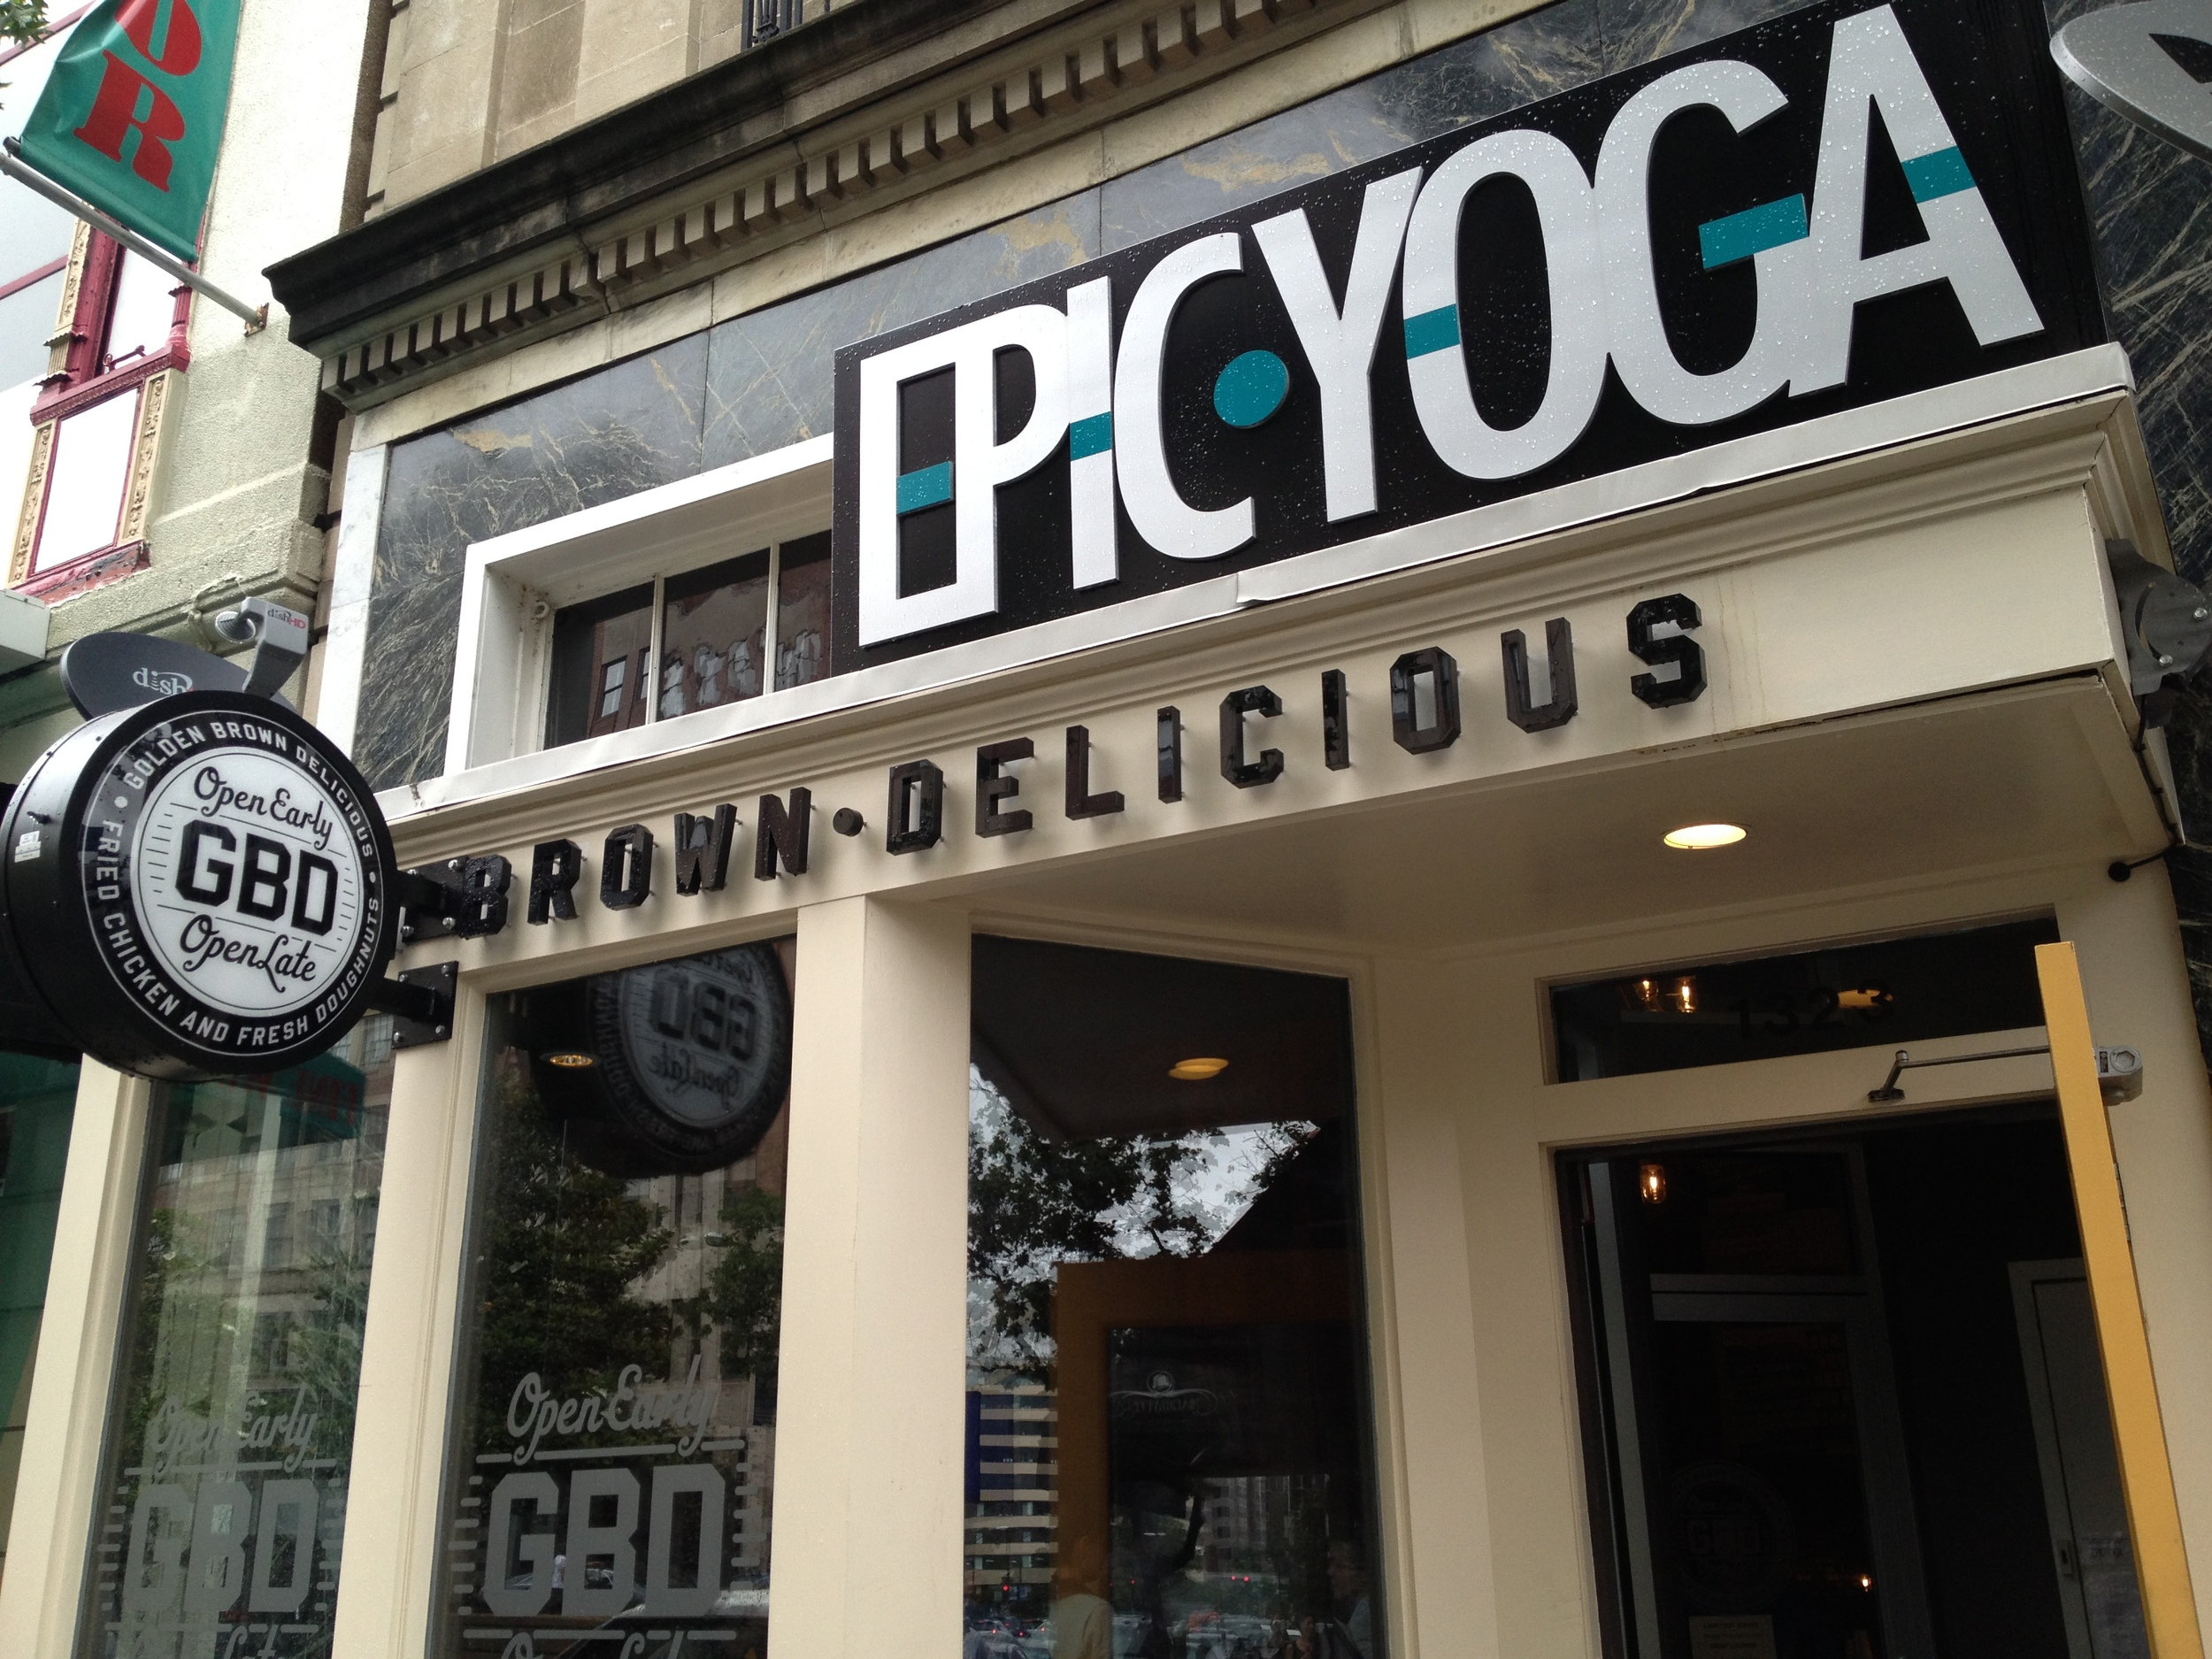 Spotted near Dupont Circle: Yoga studio above donut-and-fried-chicken joint! Balance, much?